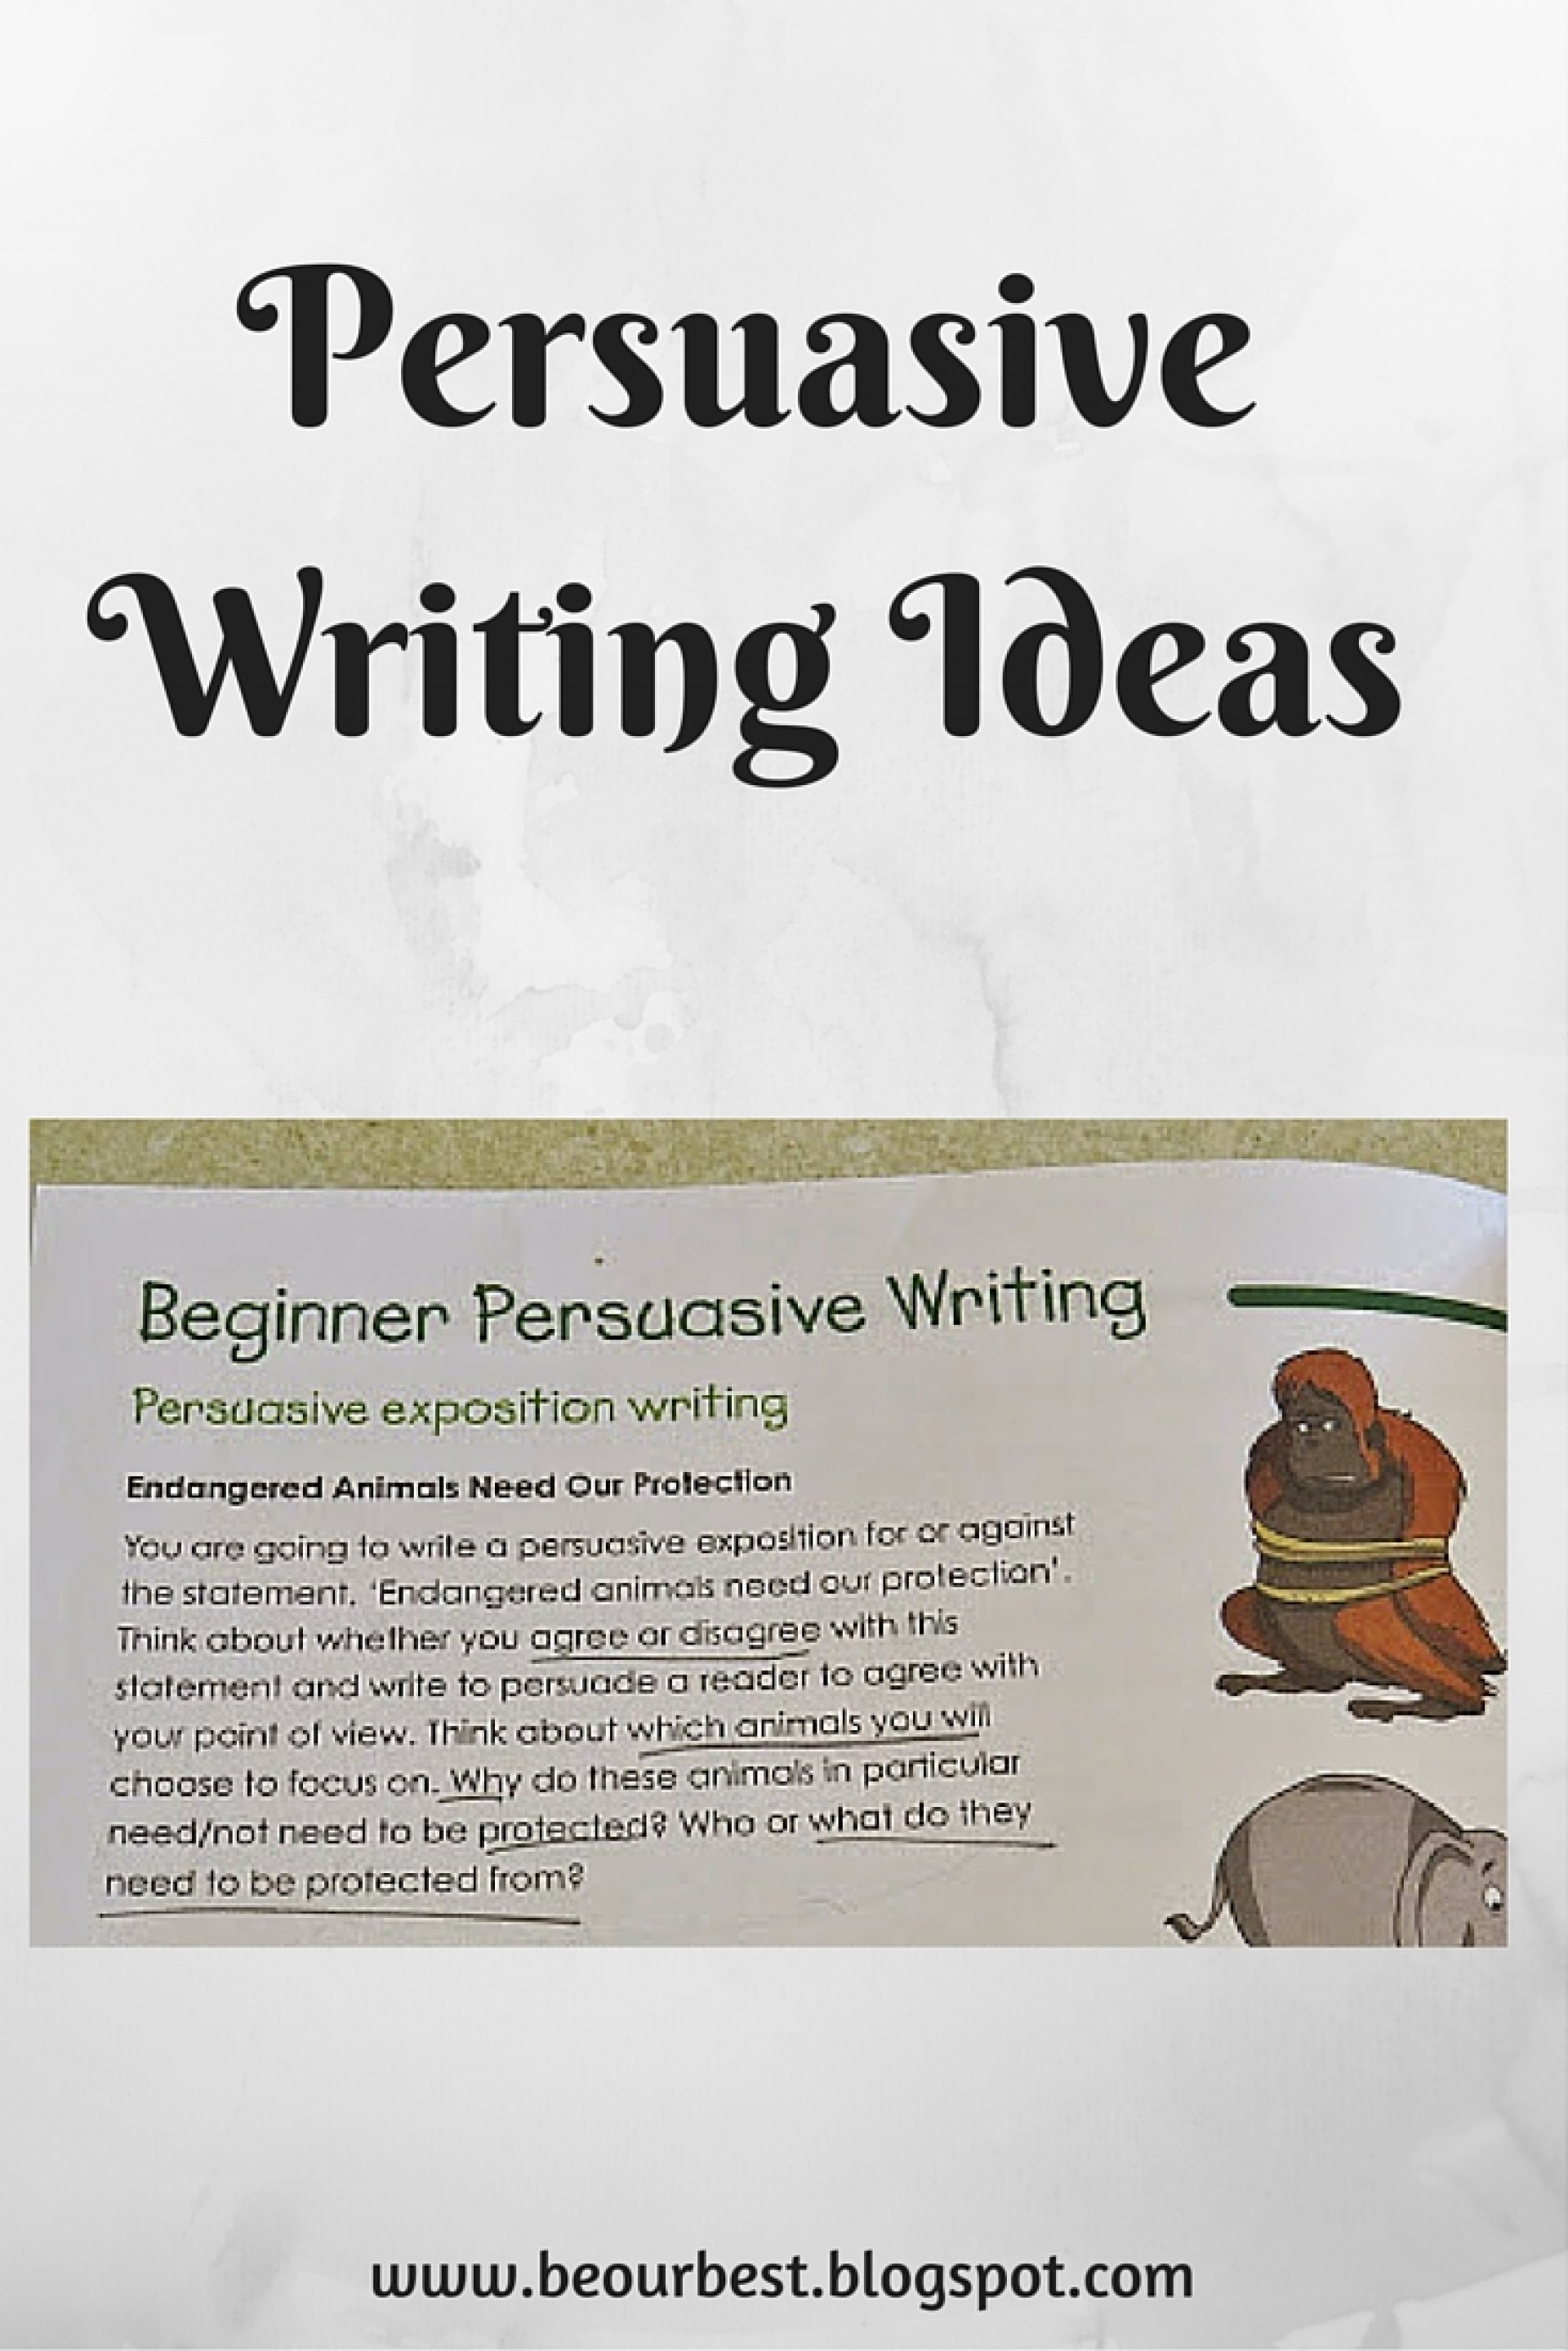 014 Topics For Persuasive Essays Essay Example Incredible 5th Graders Good A Middle Schoolers High School 1920